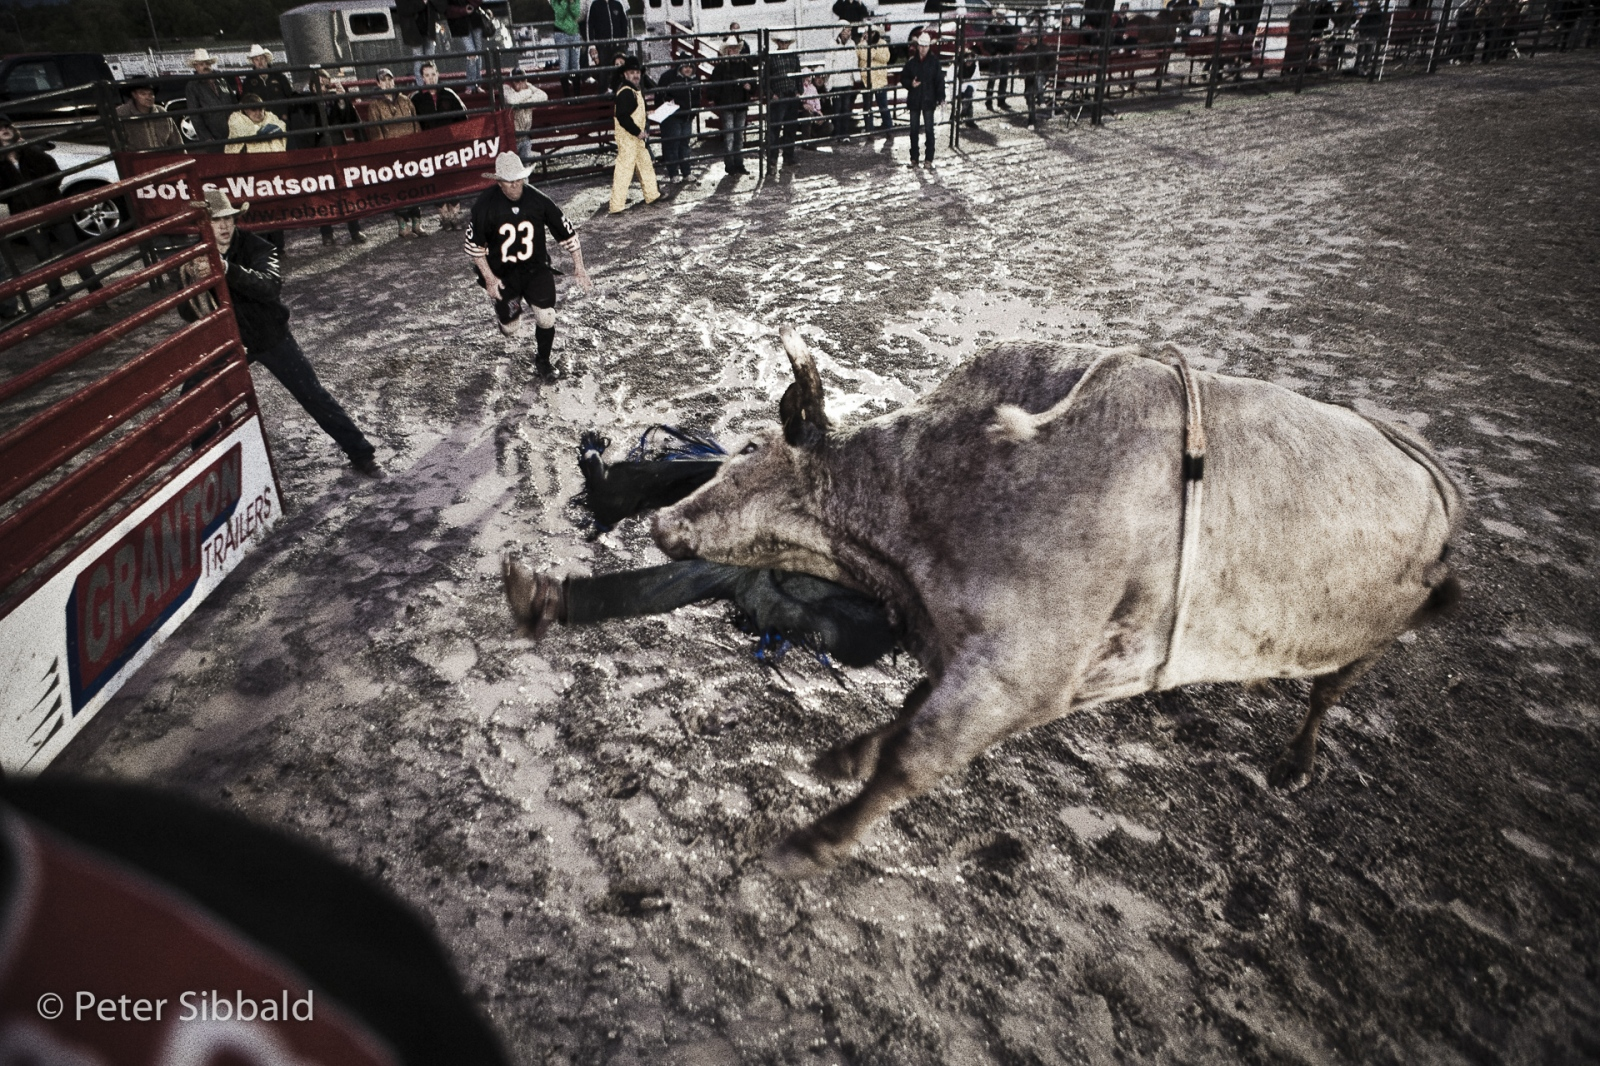 Art and Documentary Photography - Loading 035-rodeo_lindsay20090530_0188-6480psToPrint-rev.jpg